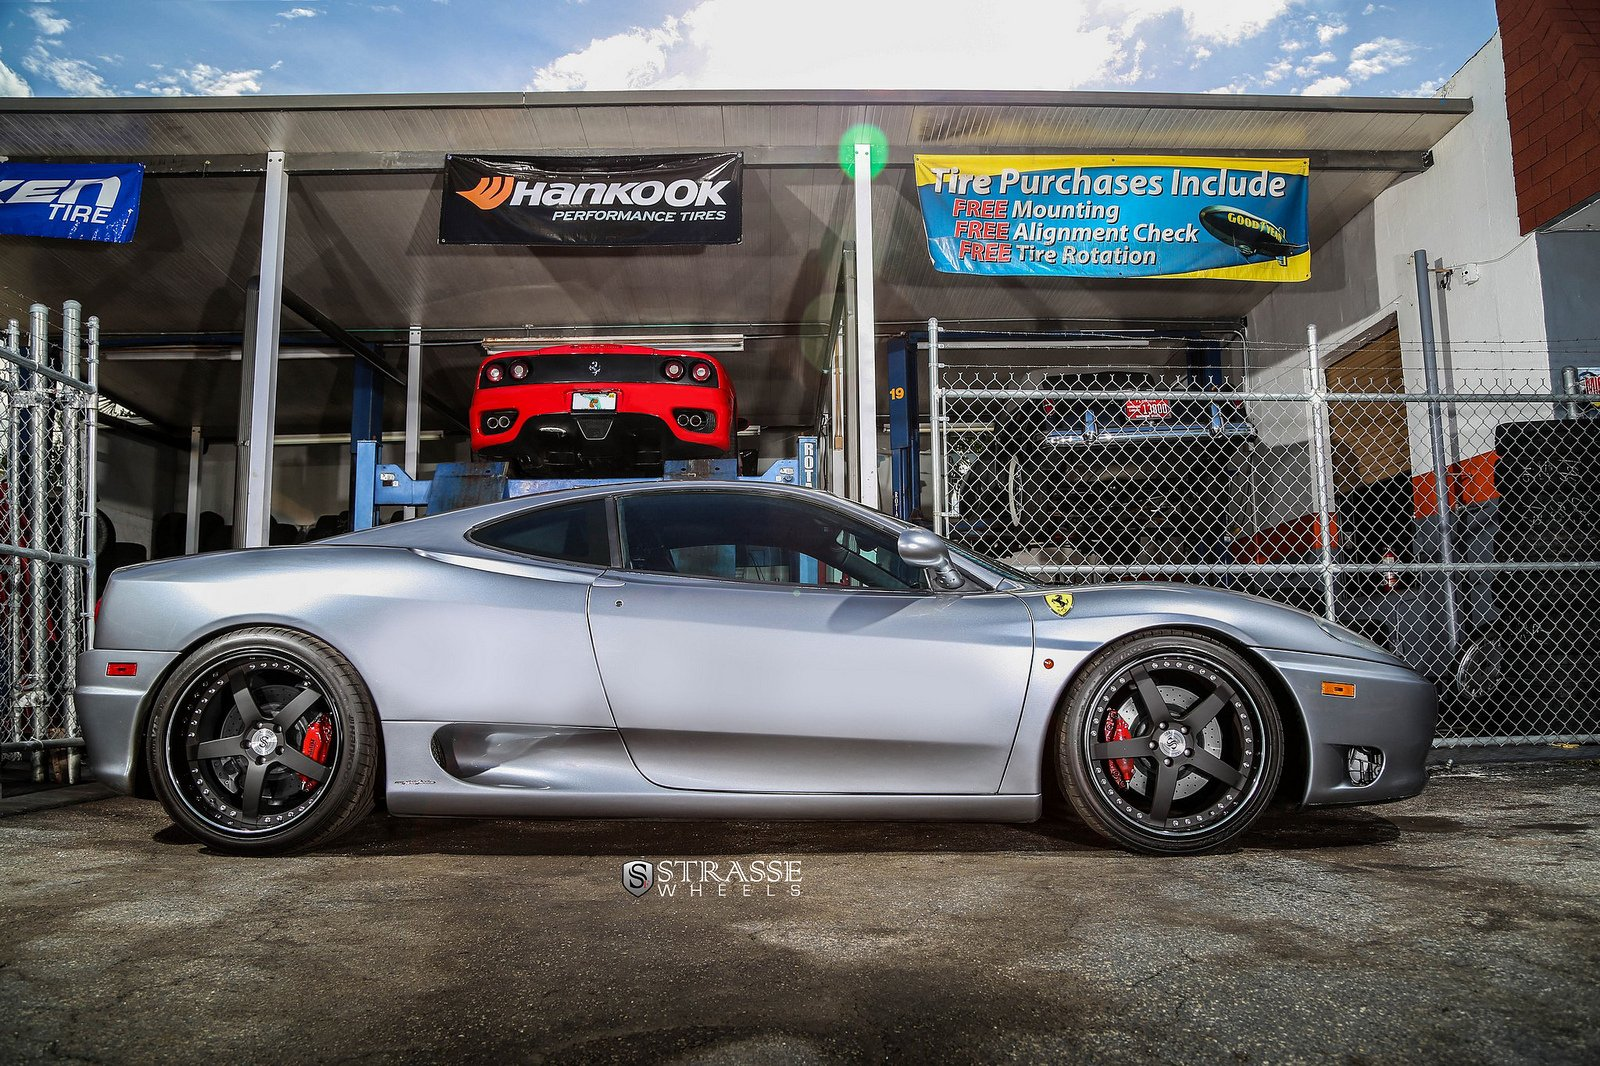 Ferrari 360 Modena Strasse Wheels Tuning Cars Grey Wallpaper 1600x1066 390187 Wallpaperup